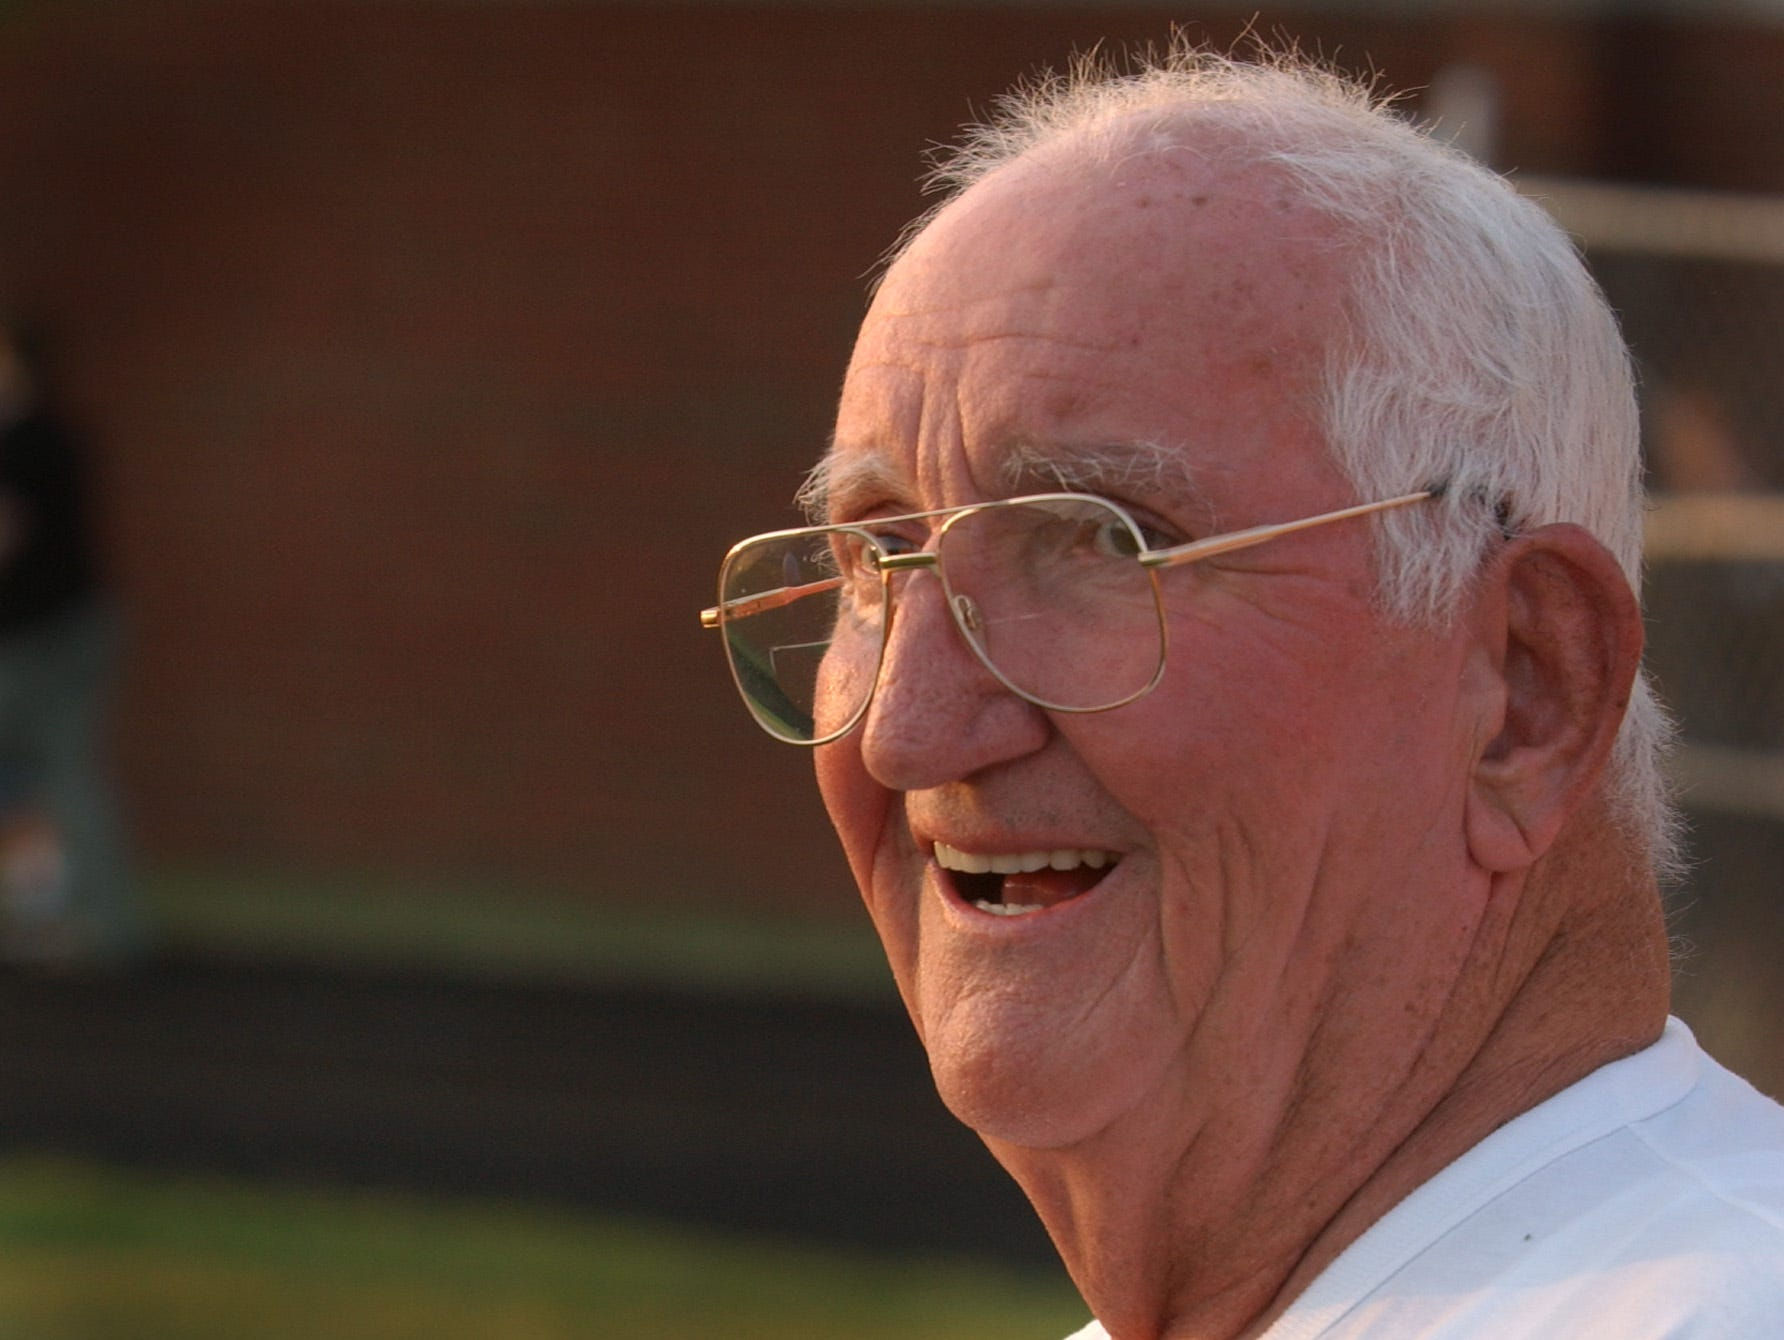 Hall of famer Paul Osborne, who put Tecumseh football on the map, passes away at 82